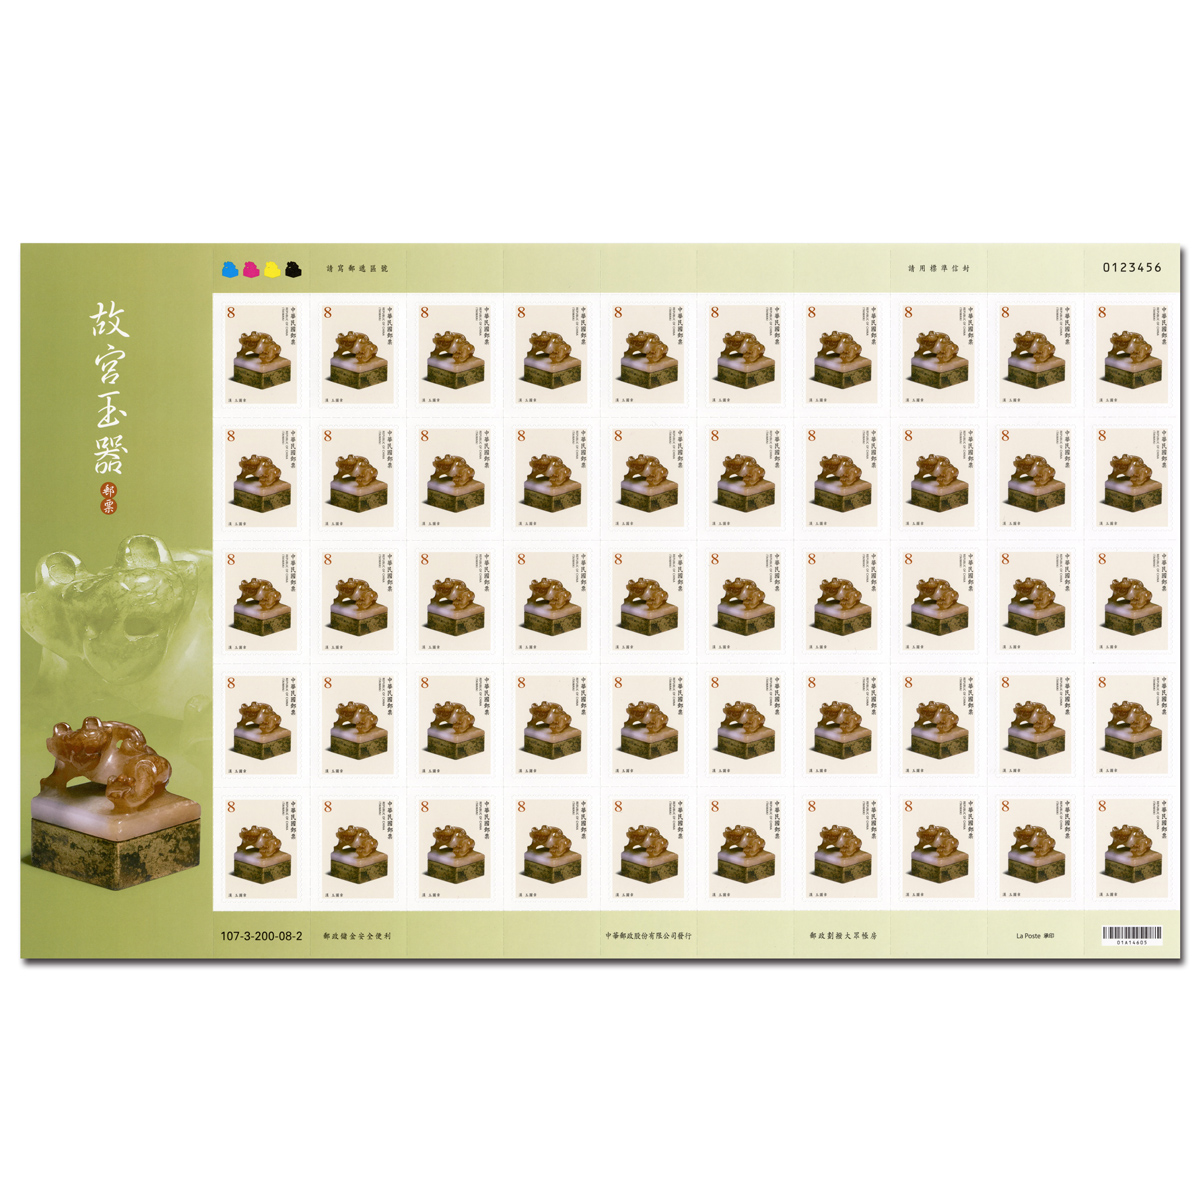 Jade Articles from the National Palace Museum Postage Stamps-Jade Seal, Han dynasty NT$8(self-adhesive stamp paper)